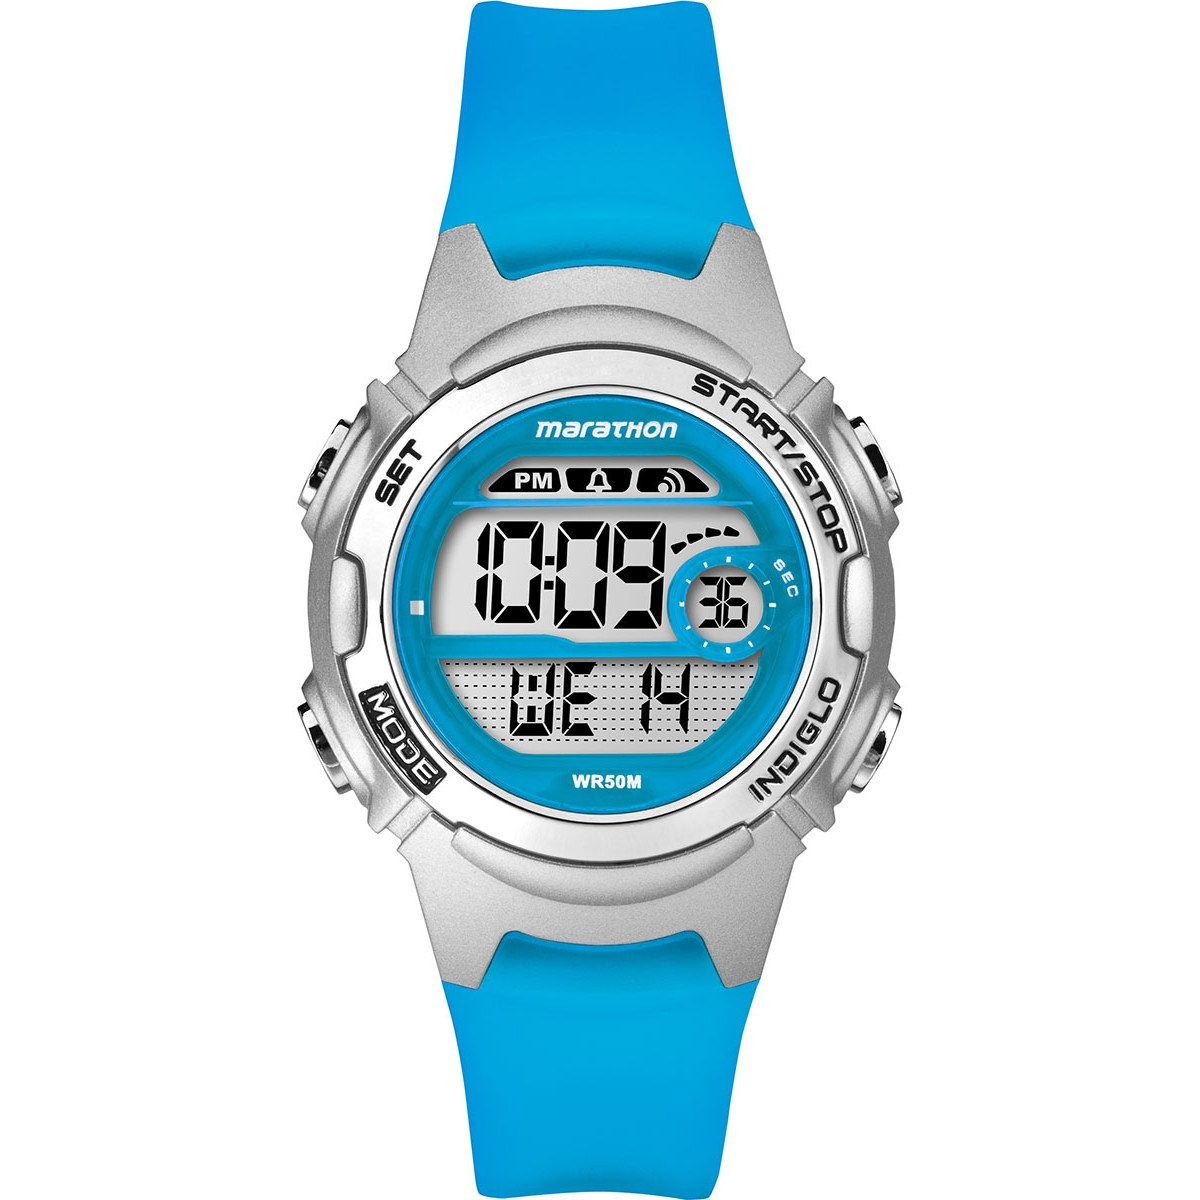 Timex TW5K96900 Childrens Marathon Watch|Blue Resin Rubber Strap|Chronograph|NEW